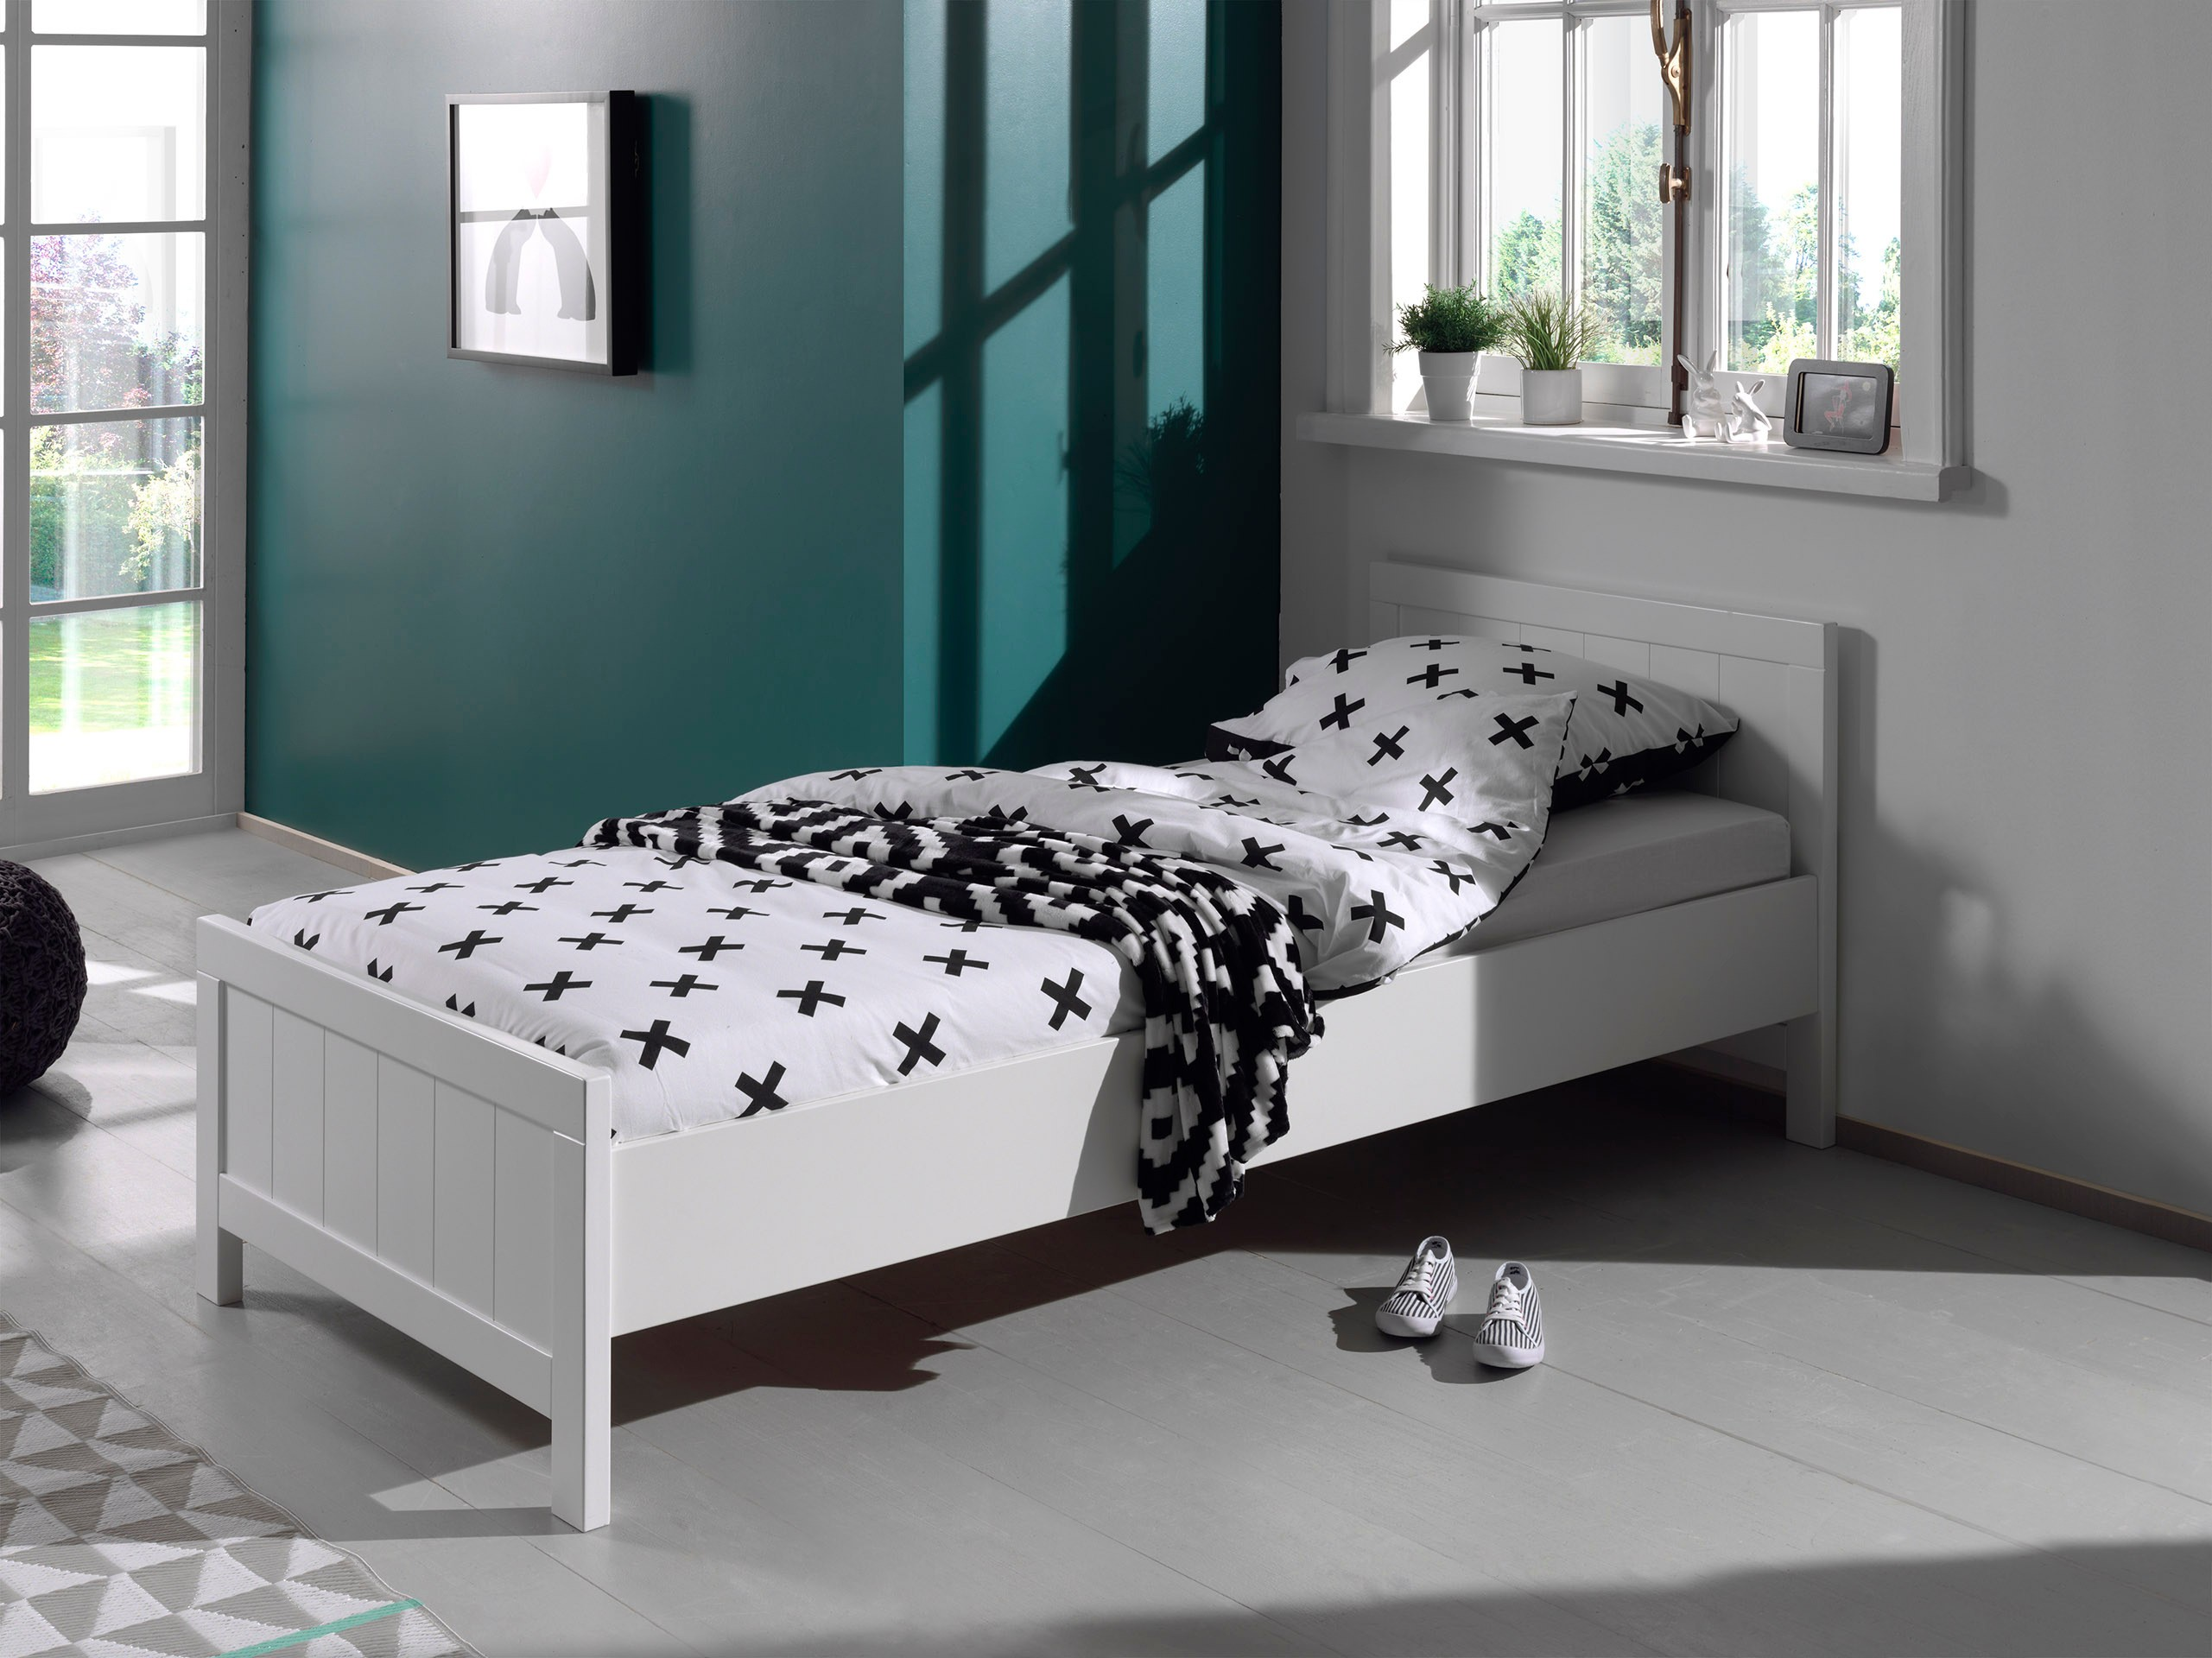 einzelbett erik liegefl che 90 x 200 cm wei wohnen betten. Black Bedroom Furniture Sets. Home Design Ideas